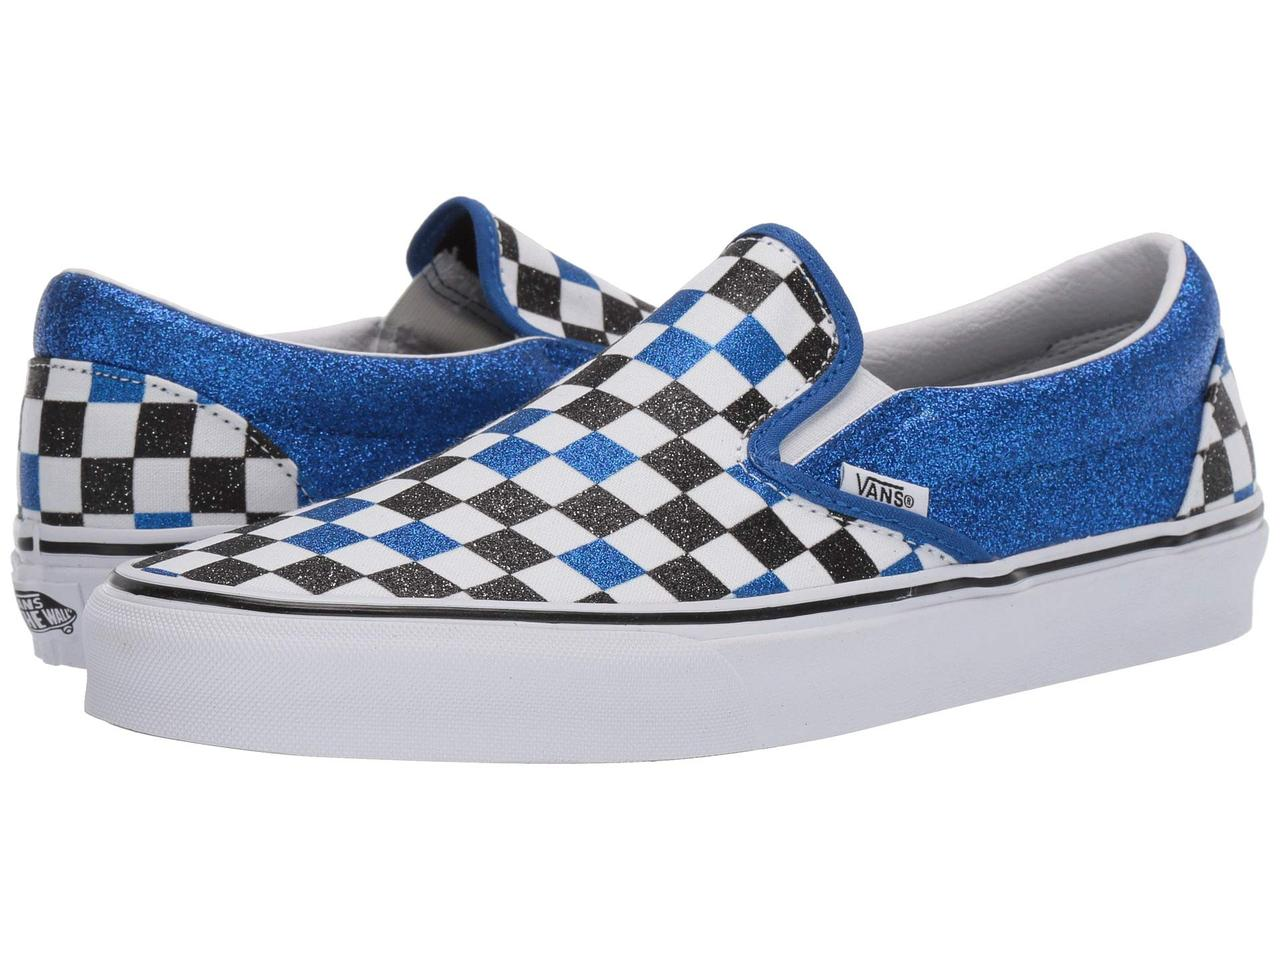 informatie vrijgeven op gedetailleerde foto's top mode Кроссовки/Кеды (Оригинал) Vans Classic Slip-On (Glitter Checkerboard)  Princess Blue/True White